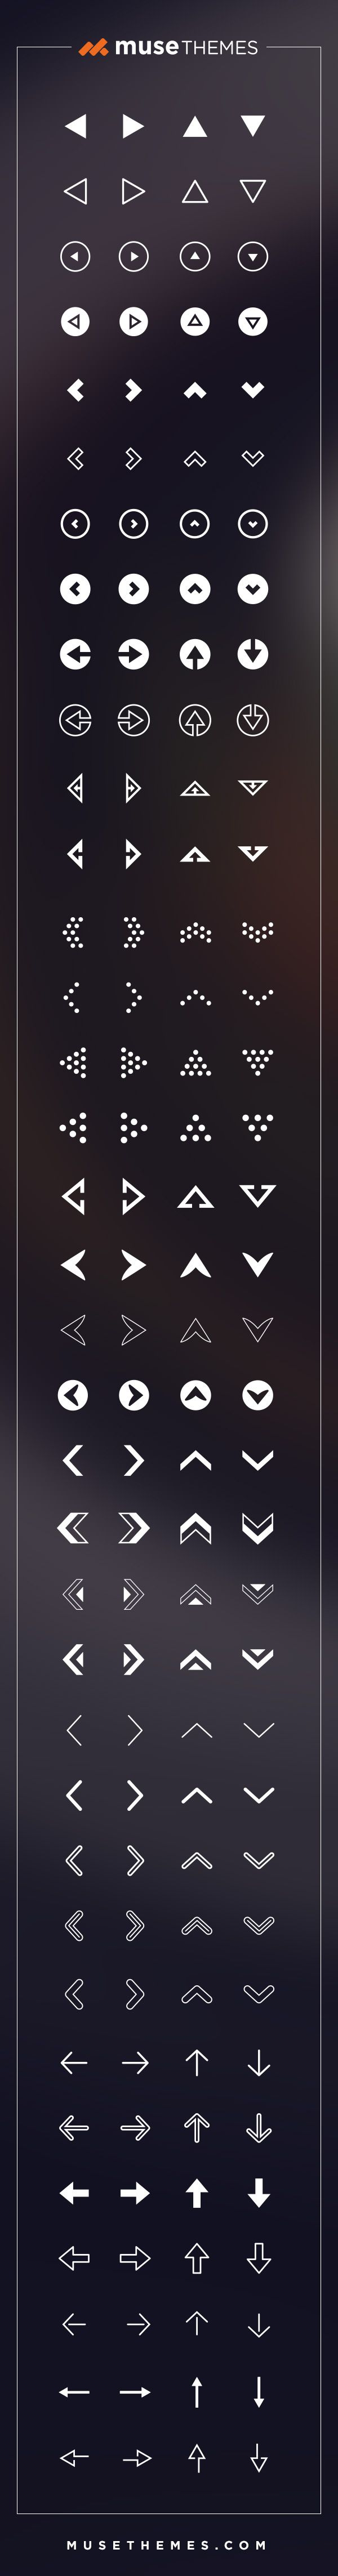 Direct traffic flow within your Adobe Muse website with the Arrows Graphic Pack, containing more than 500 arrow icons. - MuseThemes  #adobemuse #musethemes #web #webdesign #graphicdesign #design